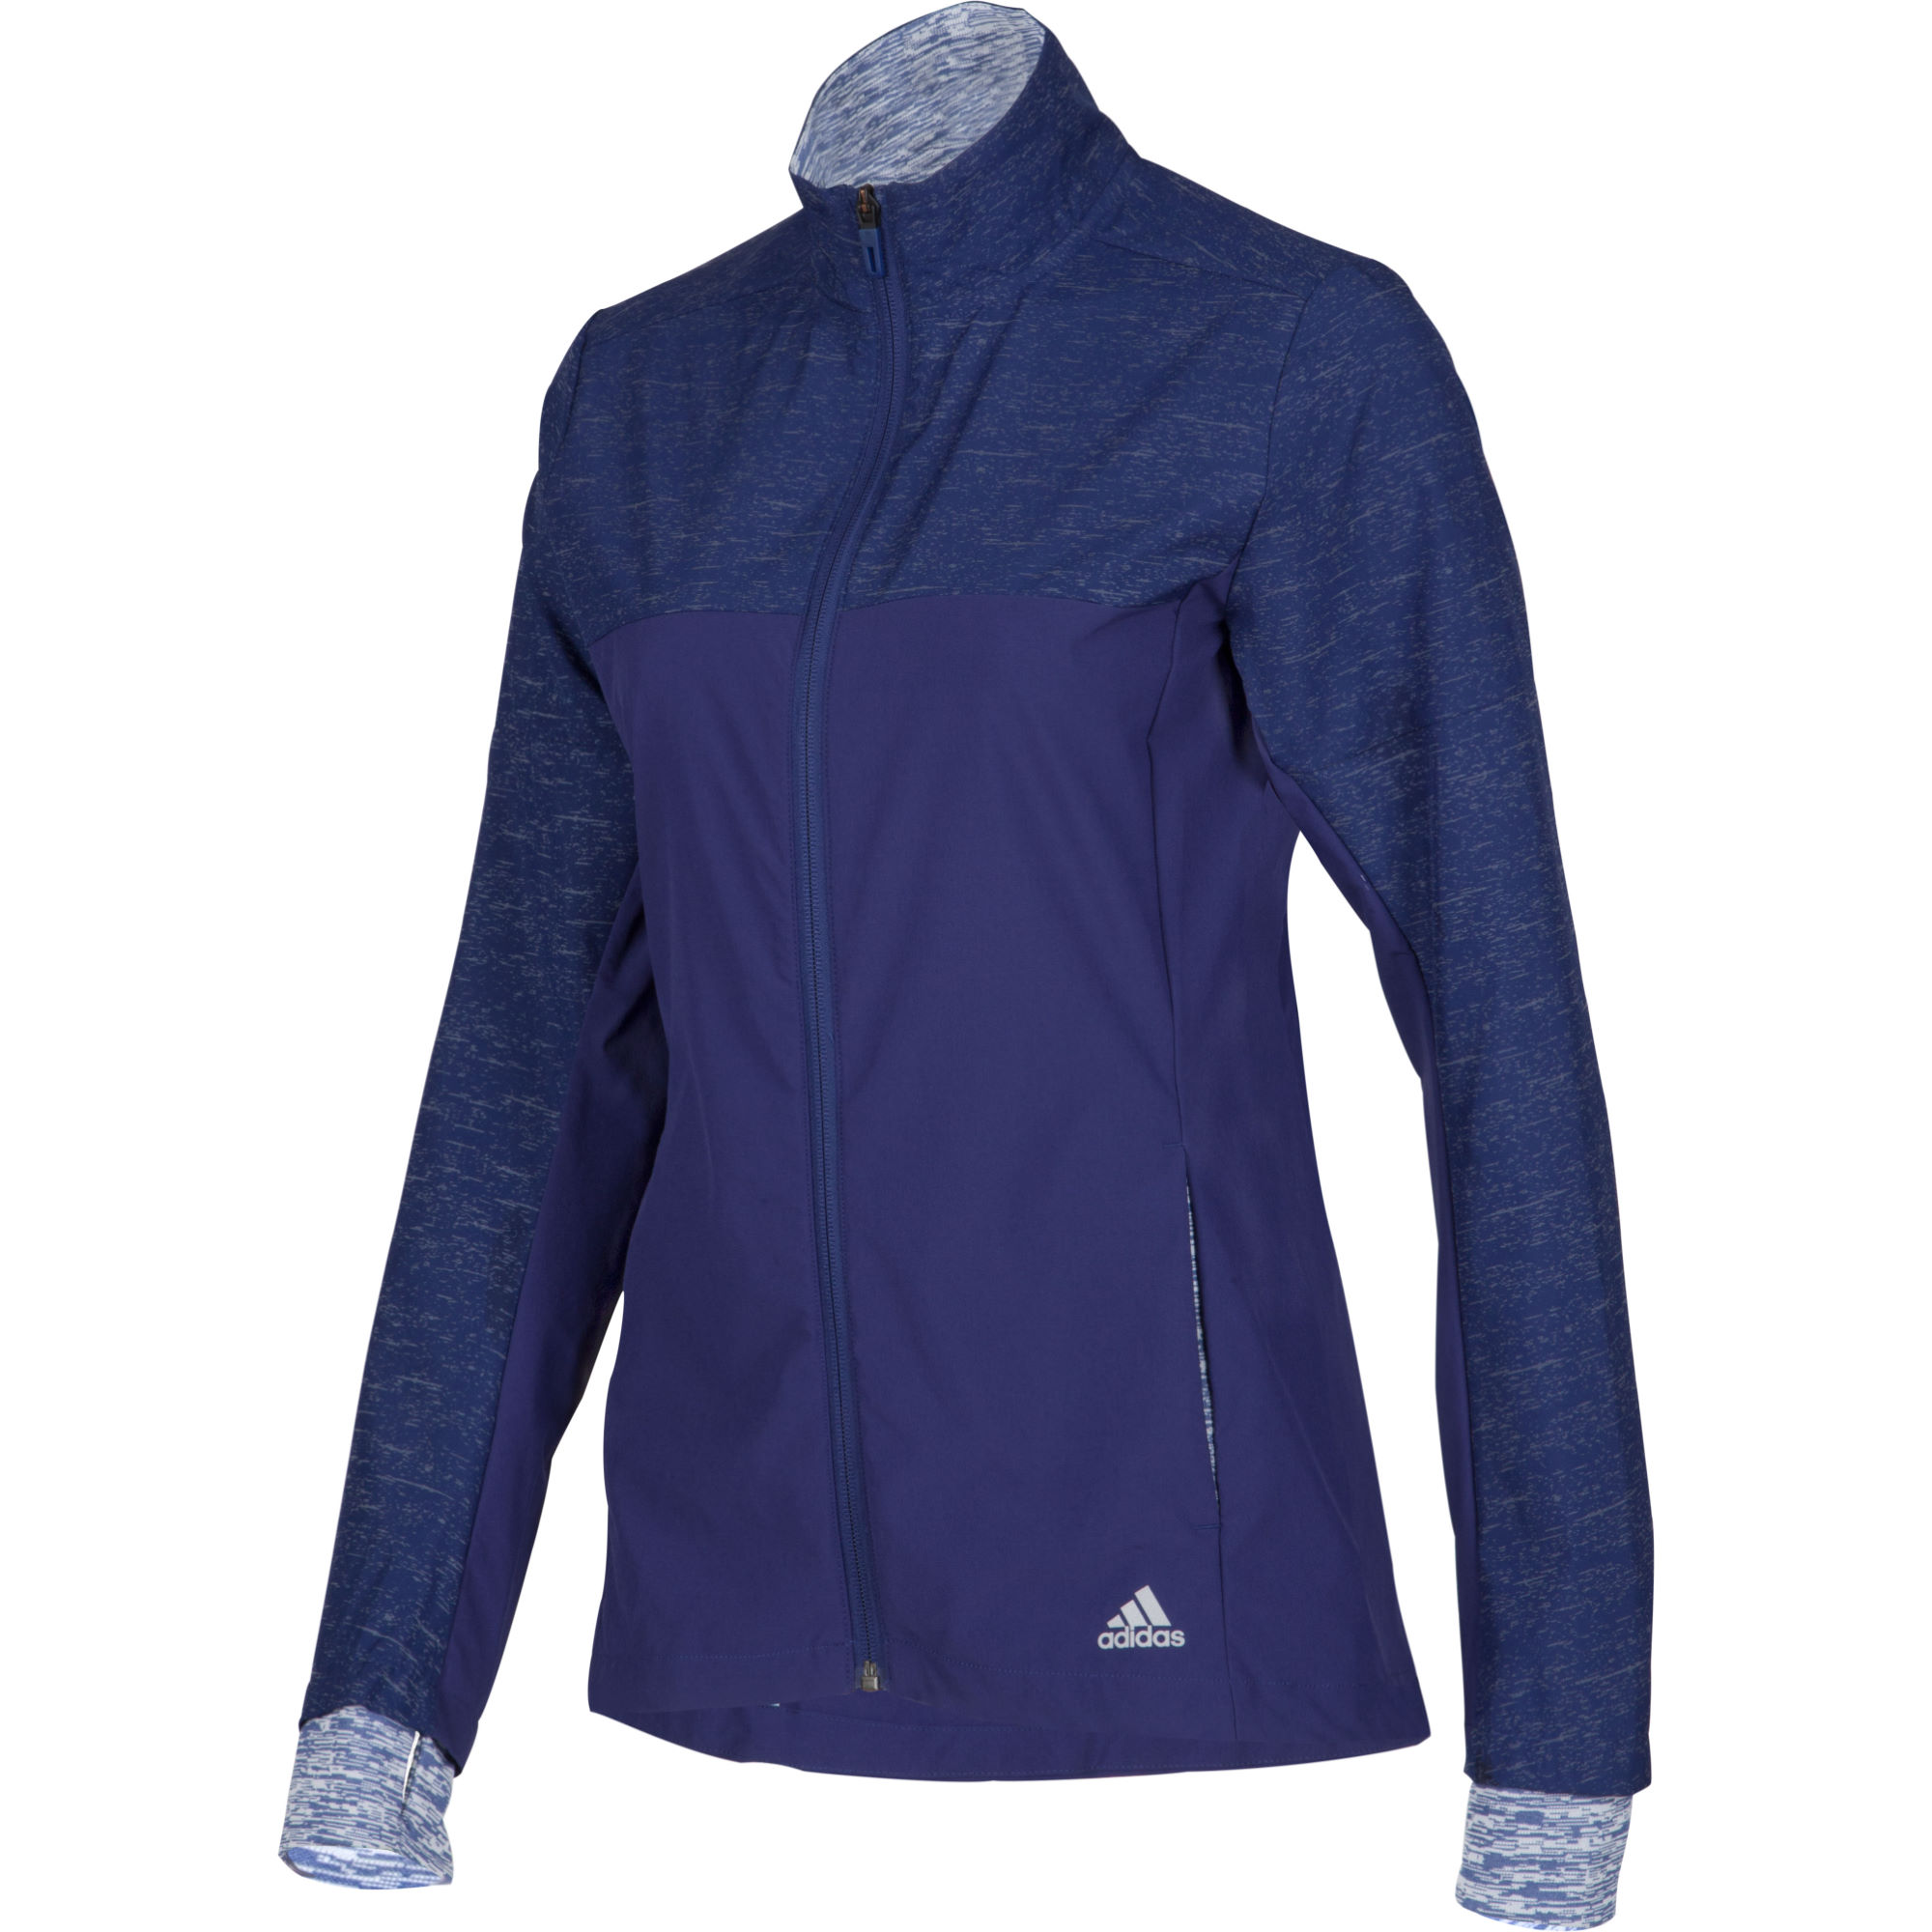 vestes de running coupe vent adidas women 39 s supernova storm jacket aw15 wiggle france. Black Bedroom Furniture Sets. Home Design Ideas